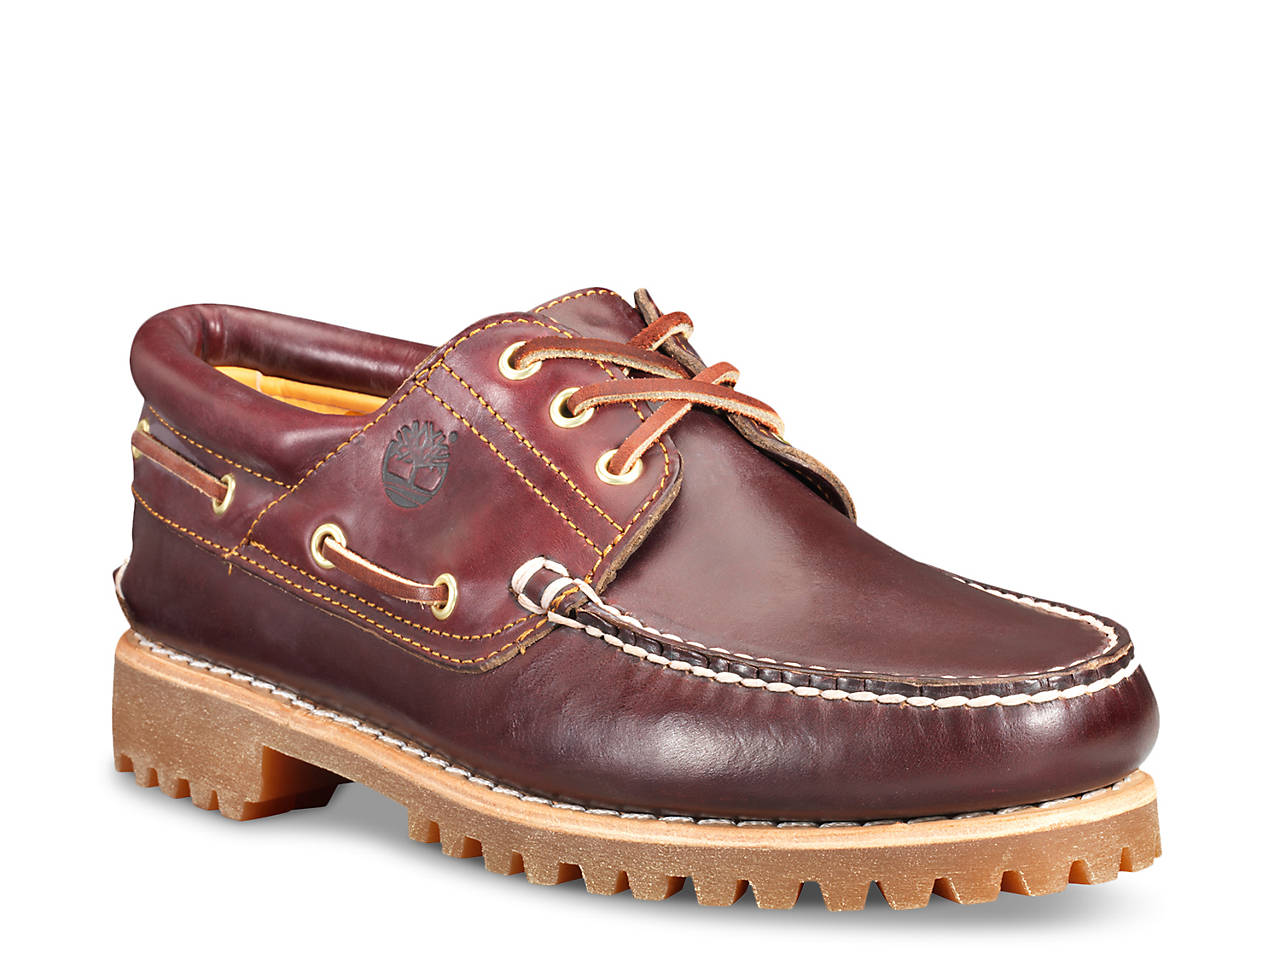 Details about Timberland Authentics Classic 3 Eye Lug Boat